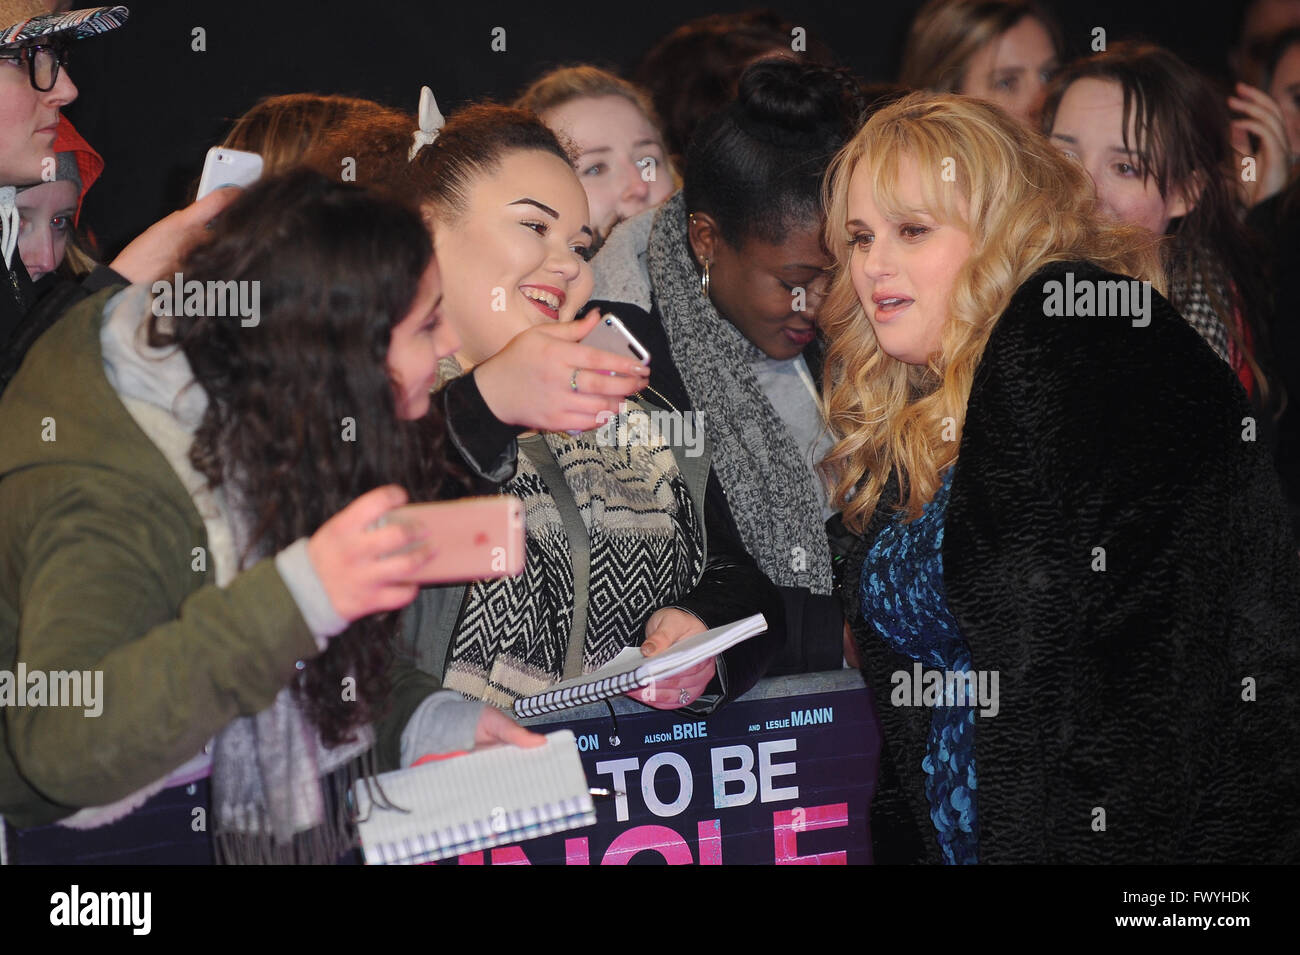 Rebel Wilson Attends The Uk Premiere Of How To Be Single At Vue West End In